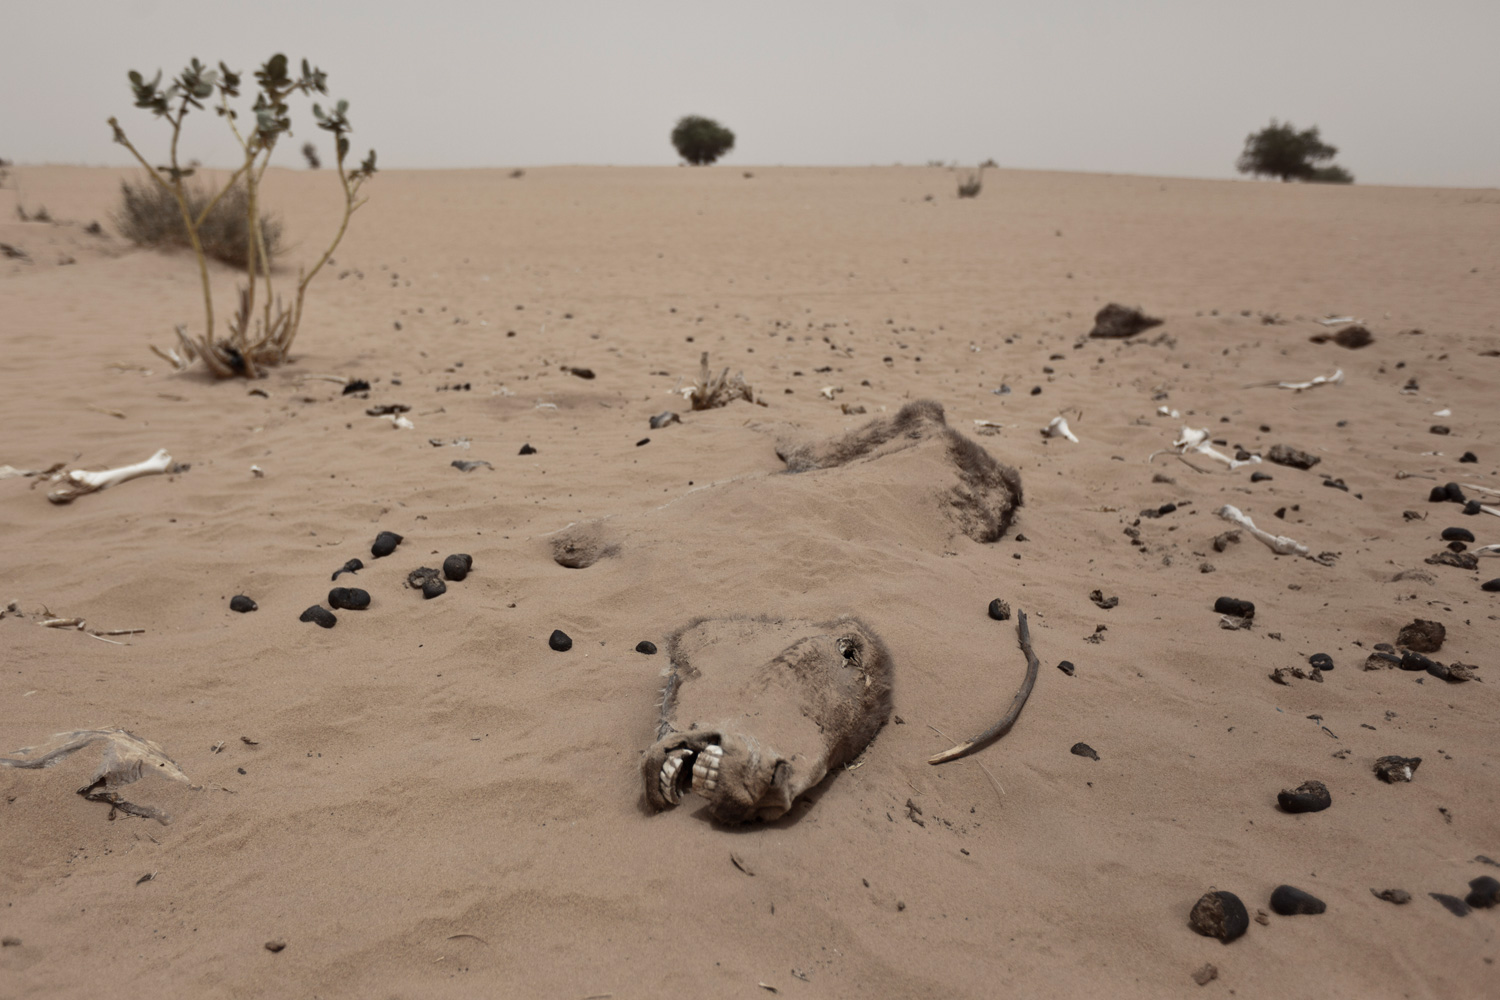 desertification in africa essay Read this essay on drought and desertification in the sahel zone, africa come browse our large digital warehouse of free sample essays get the knowledge you need in order to pass your classes and more.